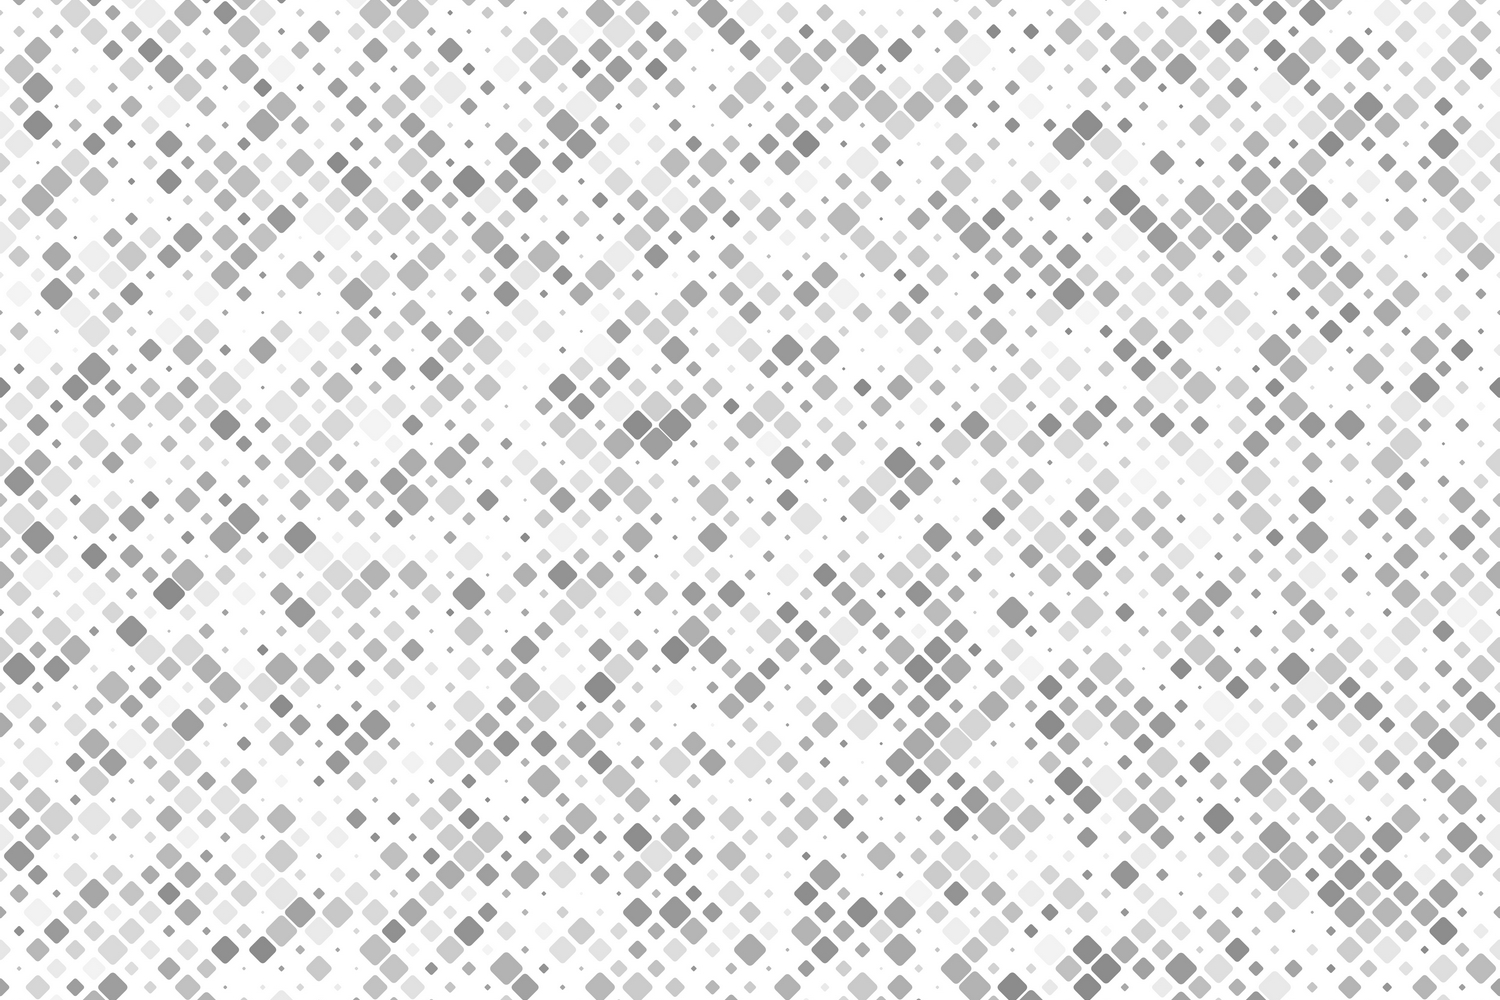 16 Seamless Square Backgrounds AI, EPS, JPG 5000x5000 example image 15